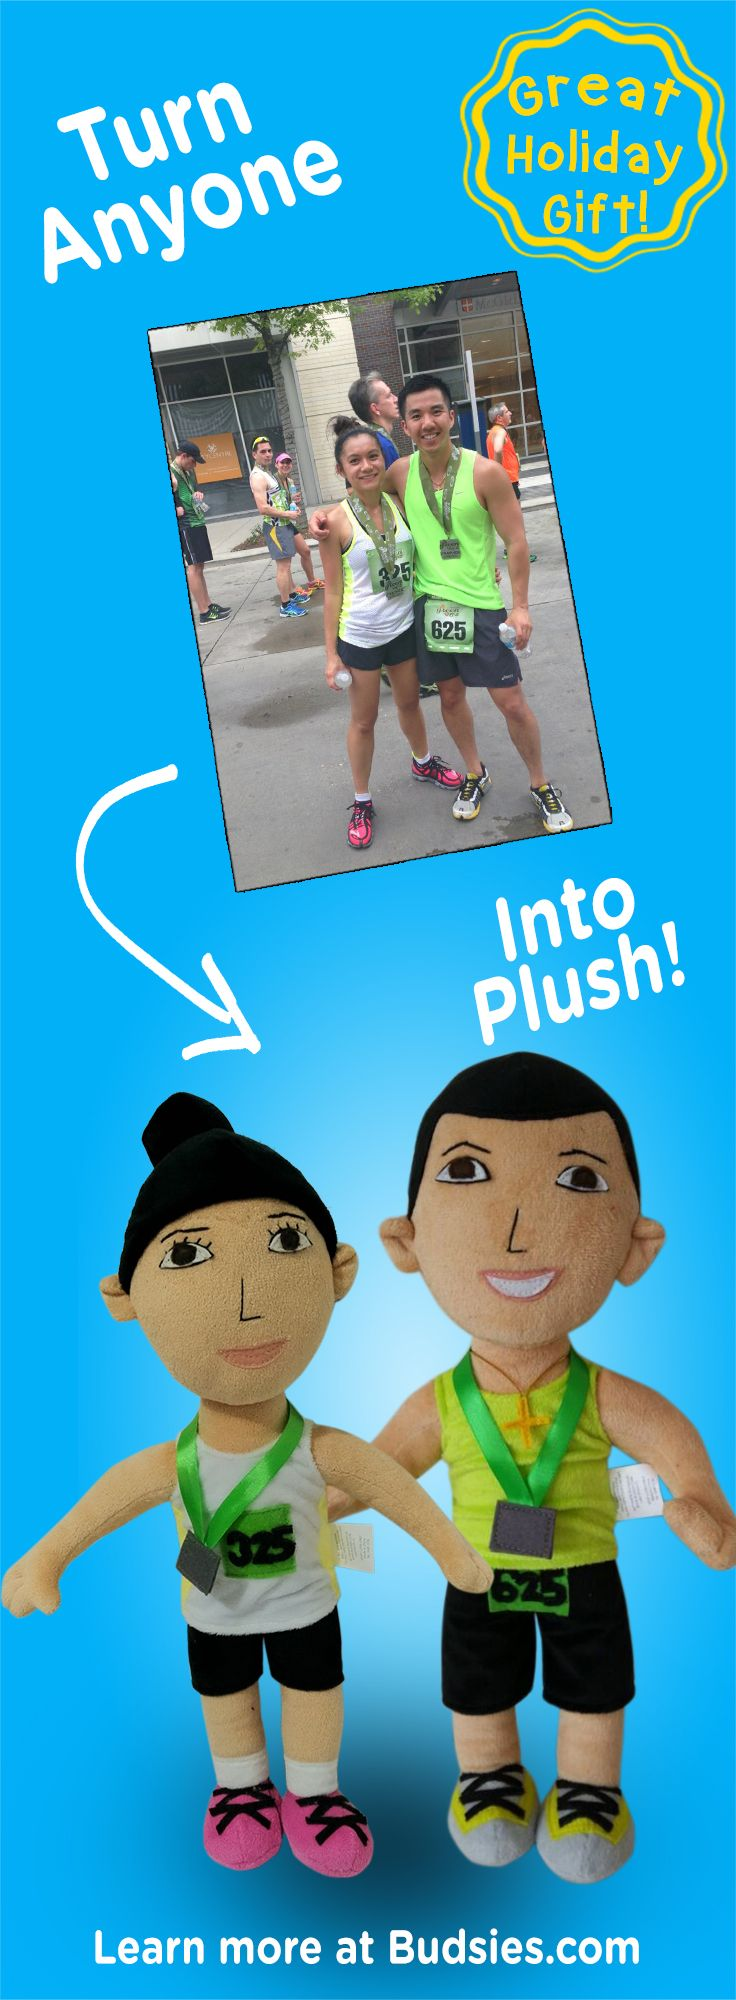 Check out this fun & unique gift for couples. Turn the two of you into a custom plush dolls! Super simple to order – learn more at